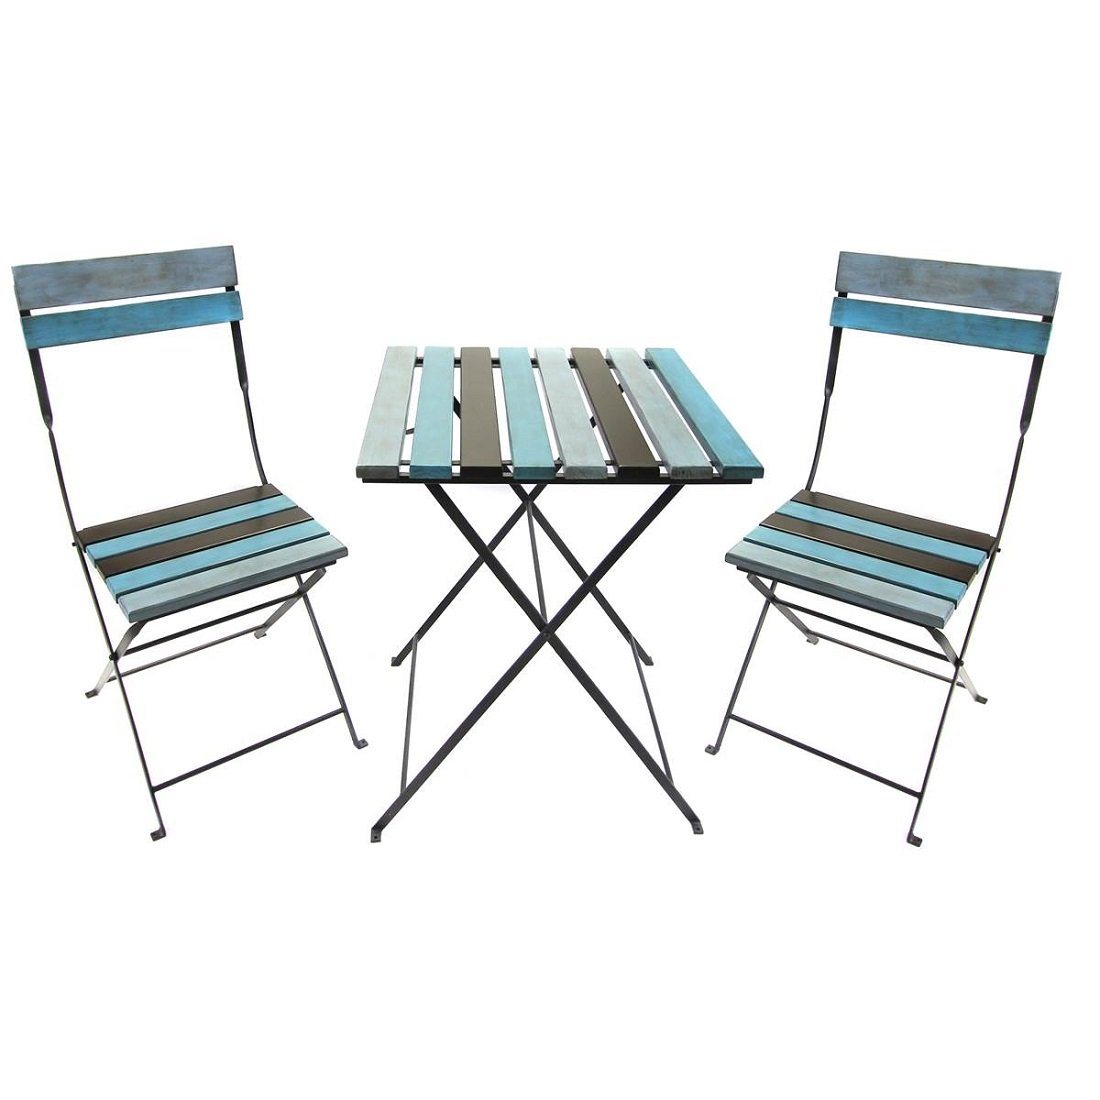 3-Piece Steel and Wood Outdoor Patio Furniture Set - Table: 23.6'' L x 23.6'' W x 28'' H in - Chairs: 16.5'' L x 18.1'' W x 32.2'' H